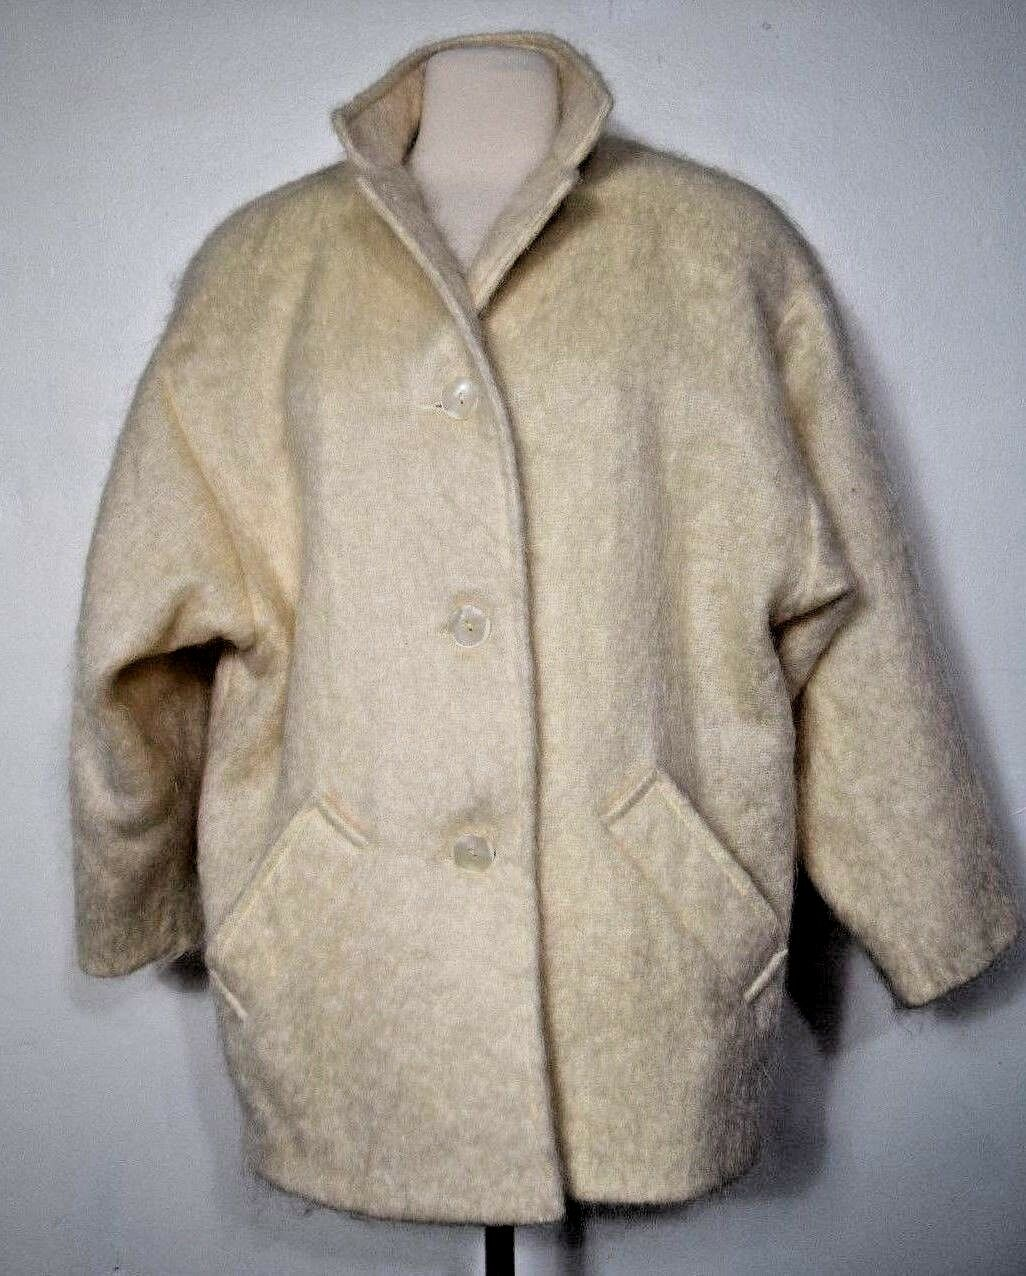 Evan Stuart Woven & Brushed Angora Coat Creamed Elegant Women's Size 10P